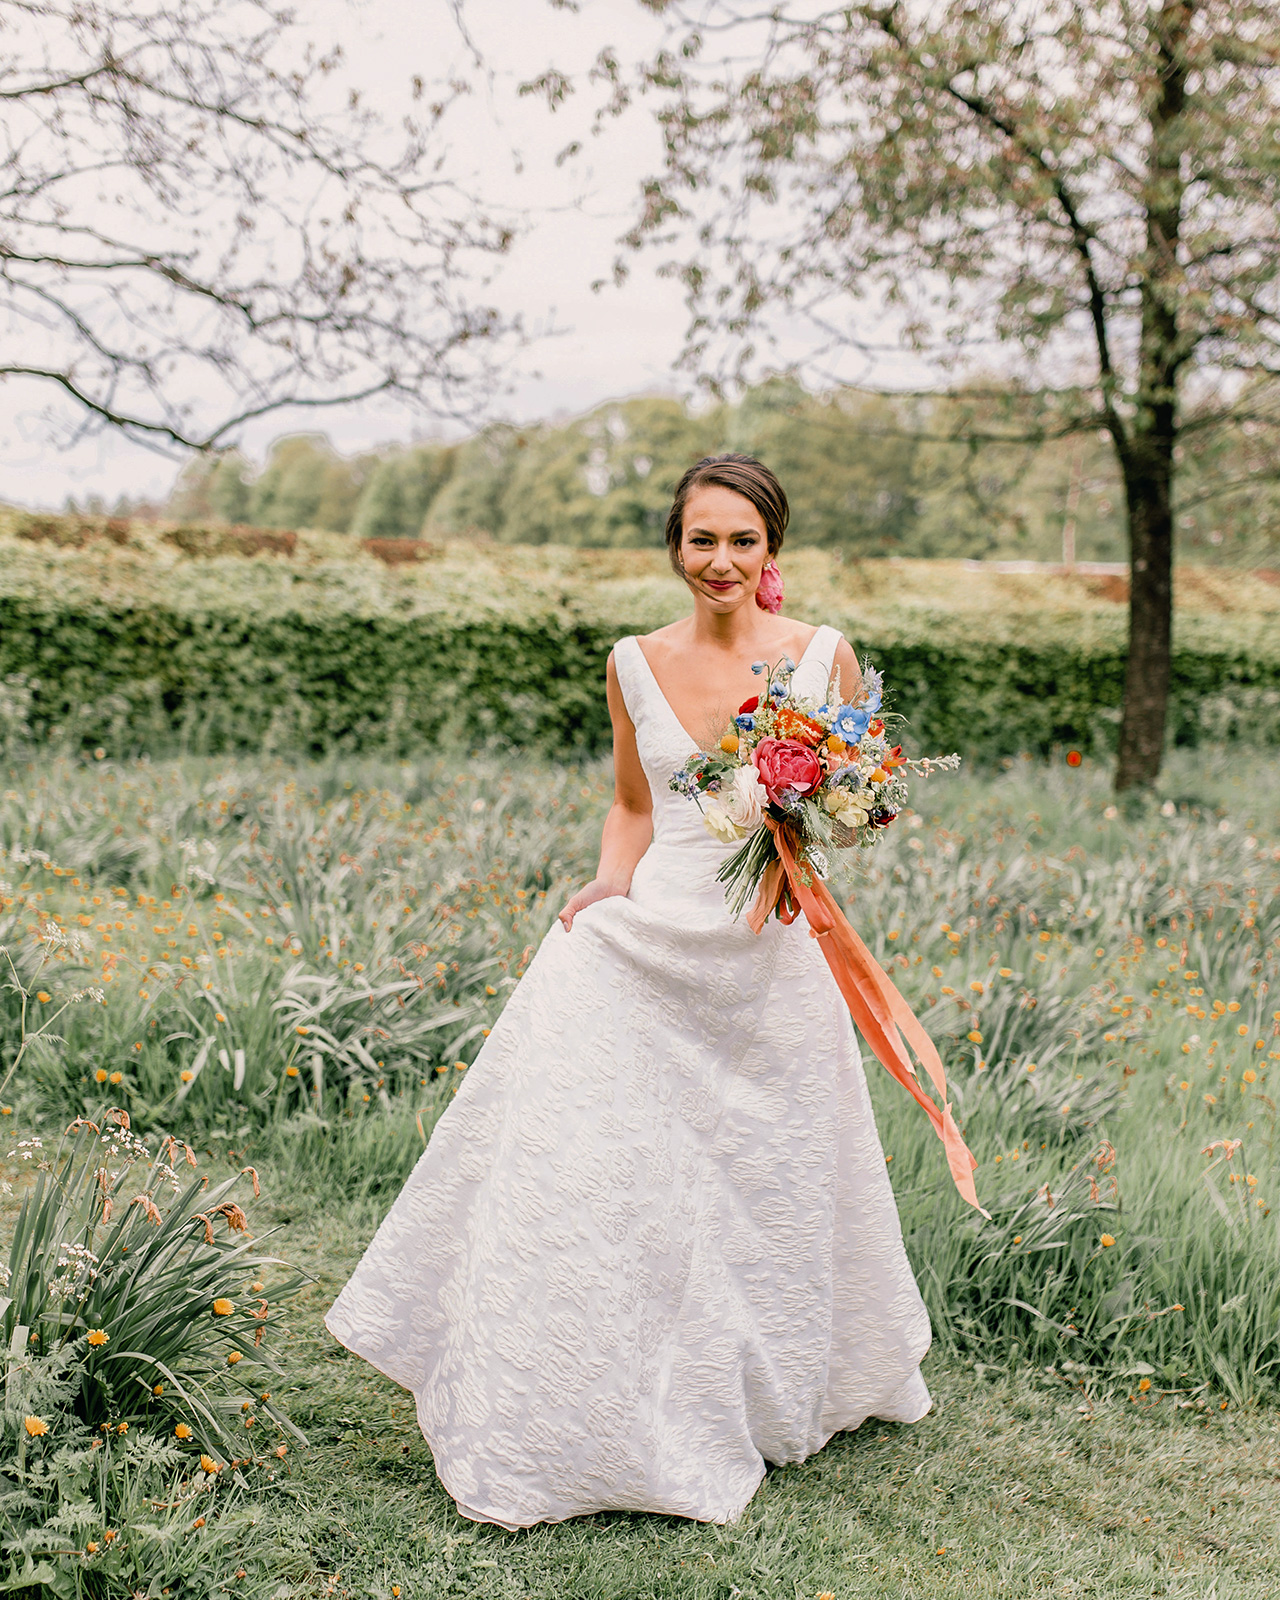 bride in dress walking through grass with floral bouquet